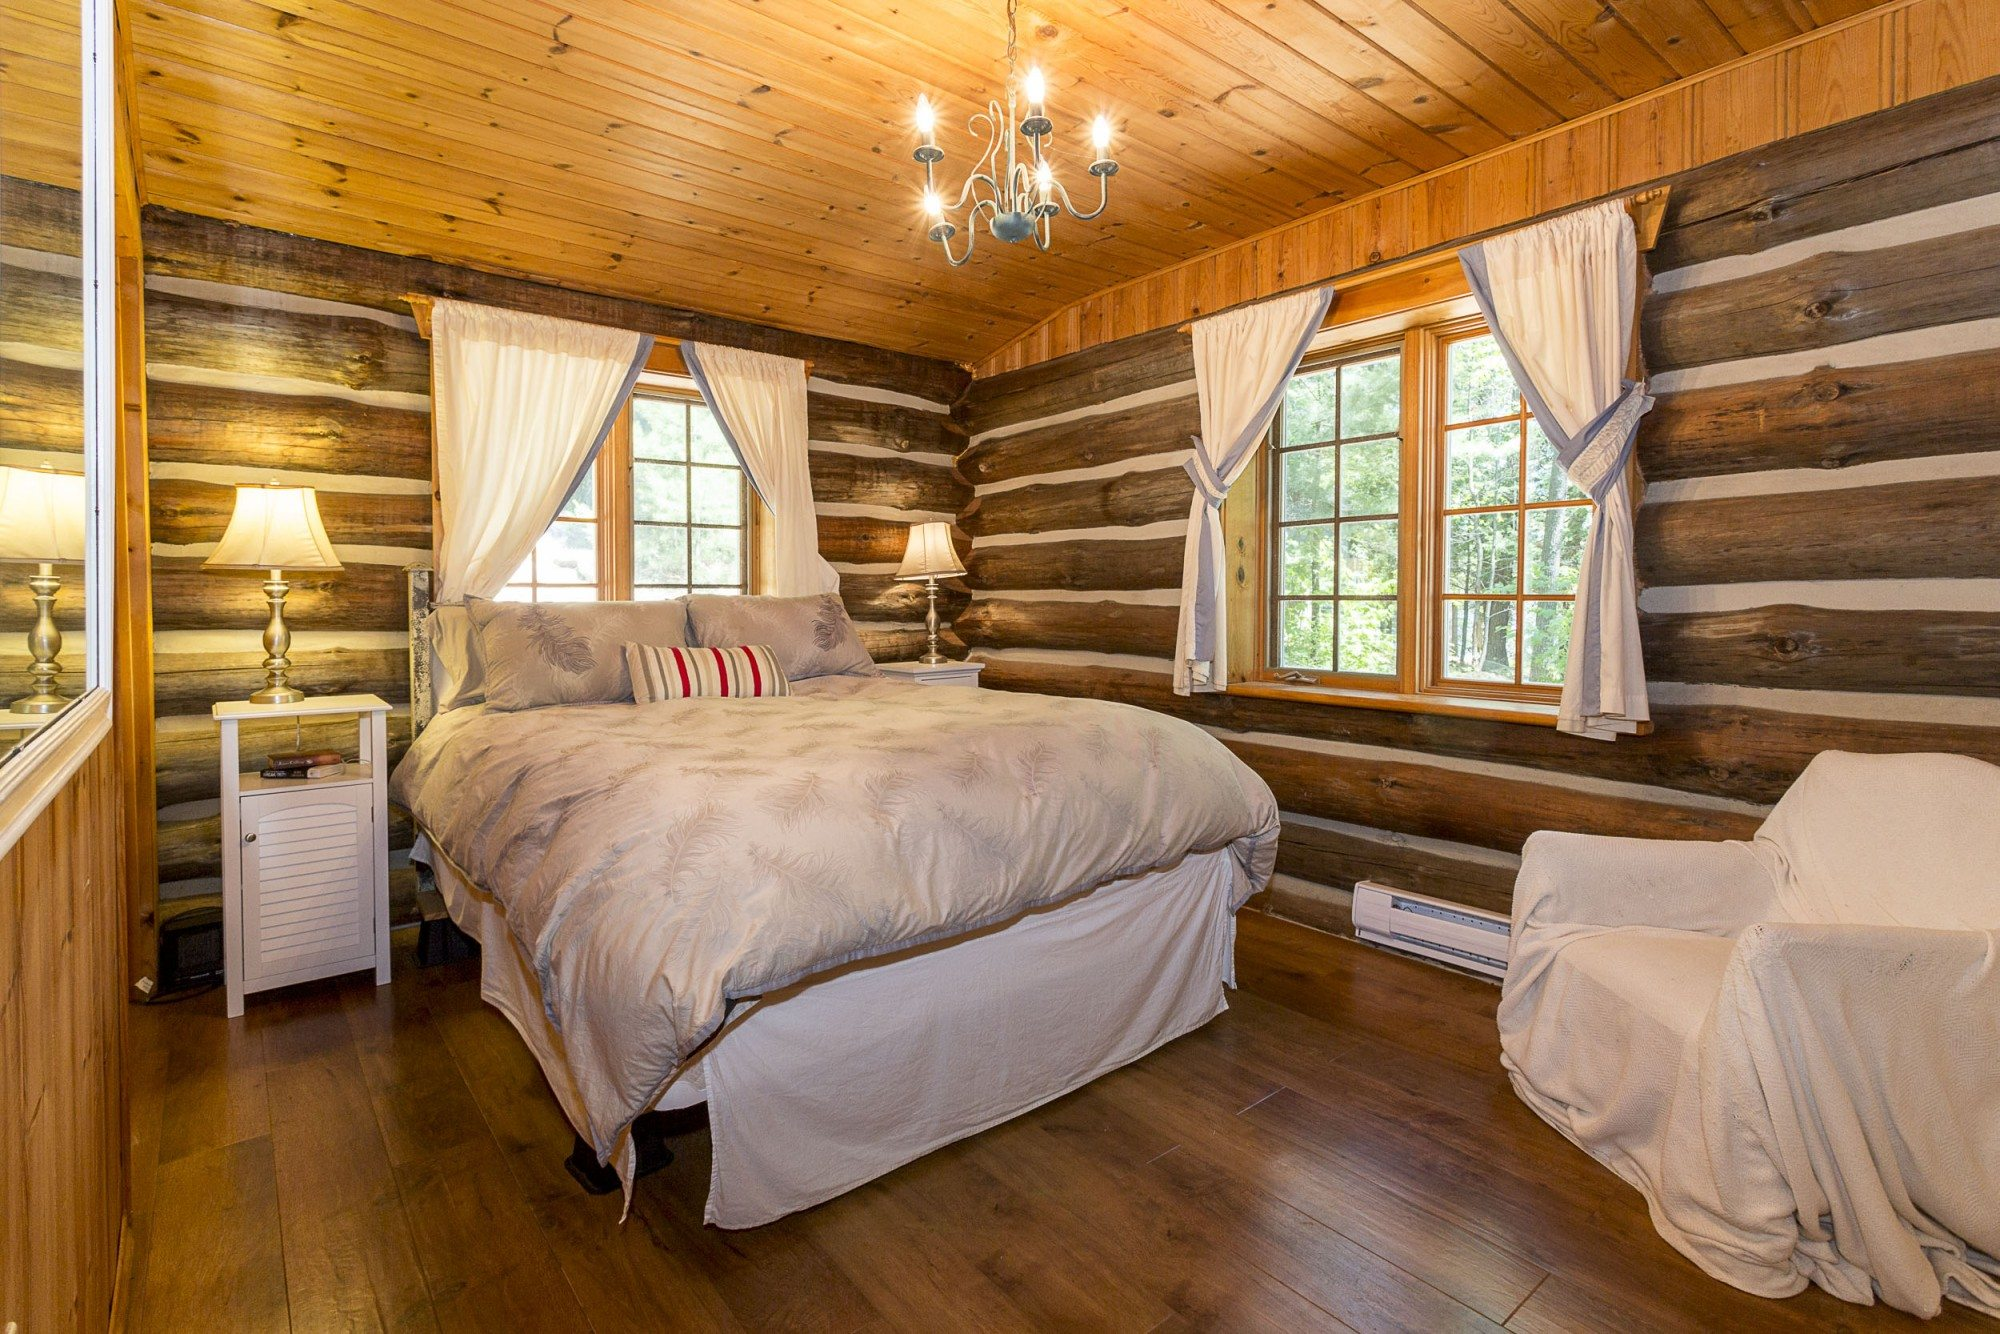 lake-of-bays-cottage-of-the-week-1057-montgomery-bay-road.8